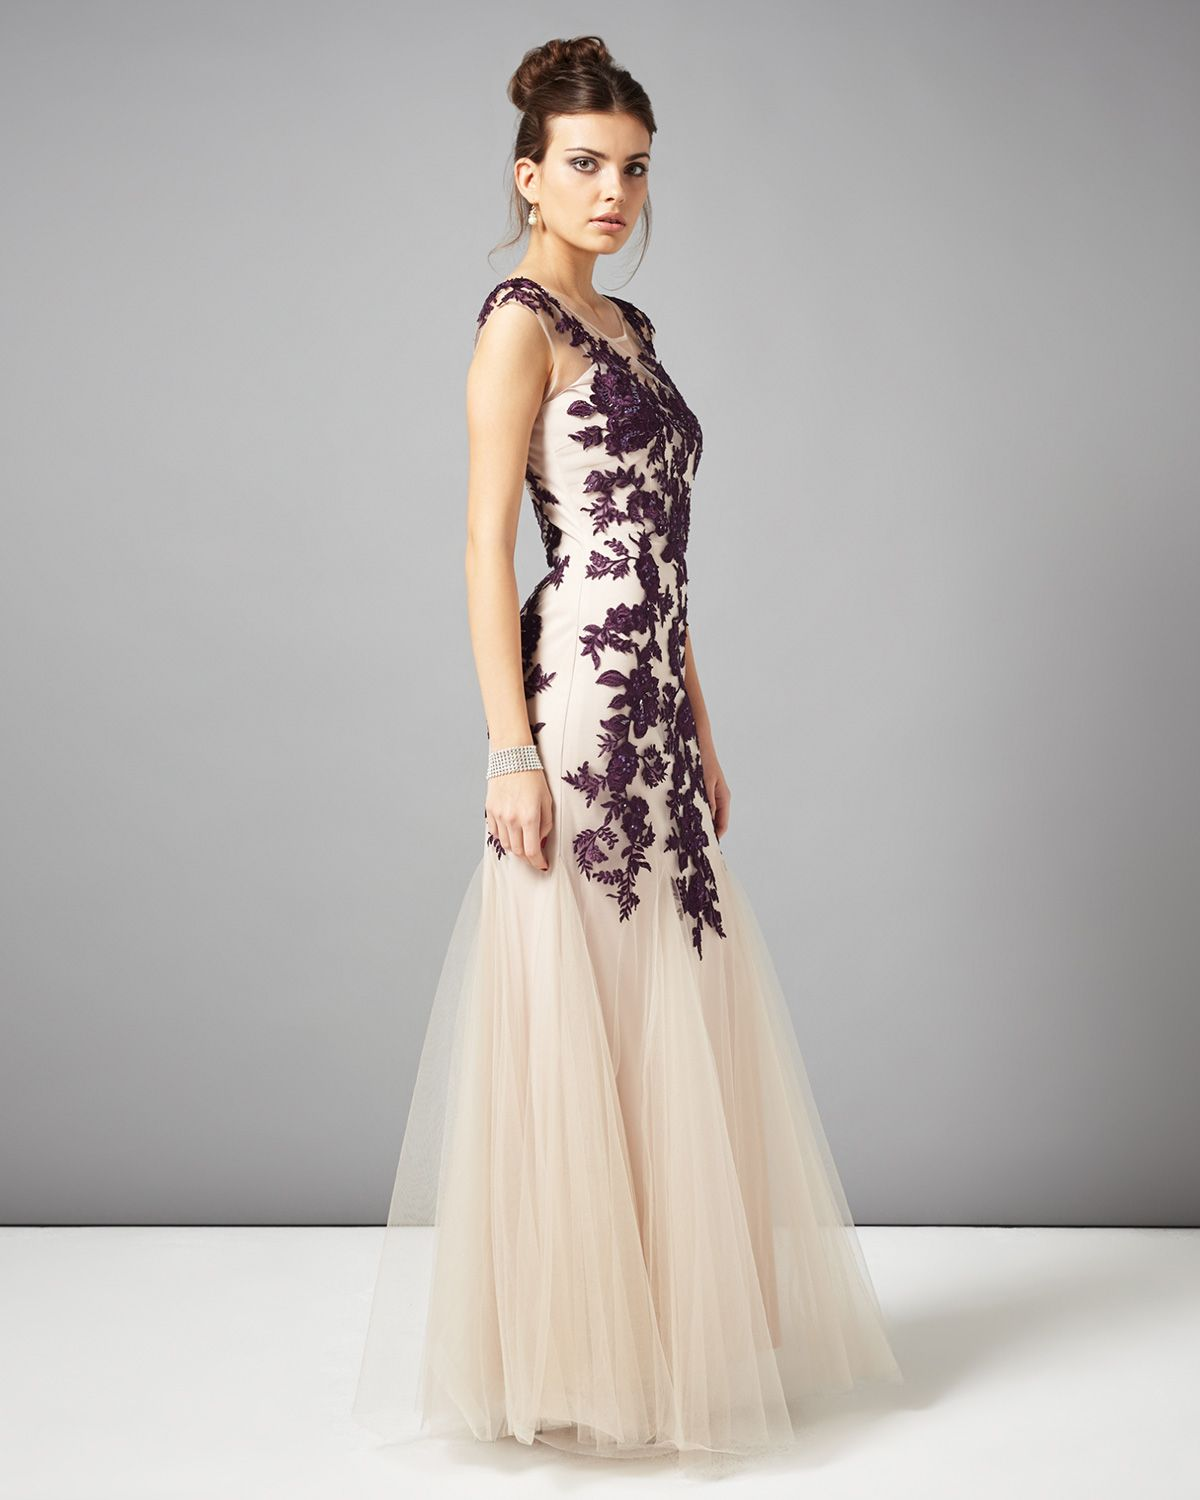 Dresses | Neutral Rita Tulle Full Length Dress | Phase Eight ...